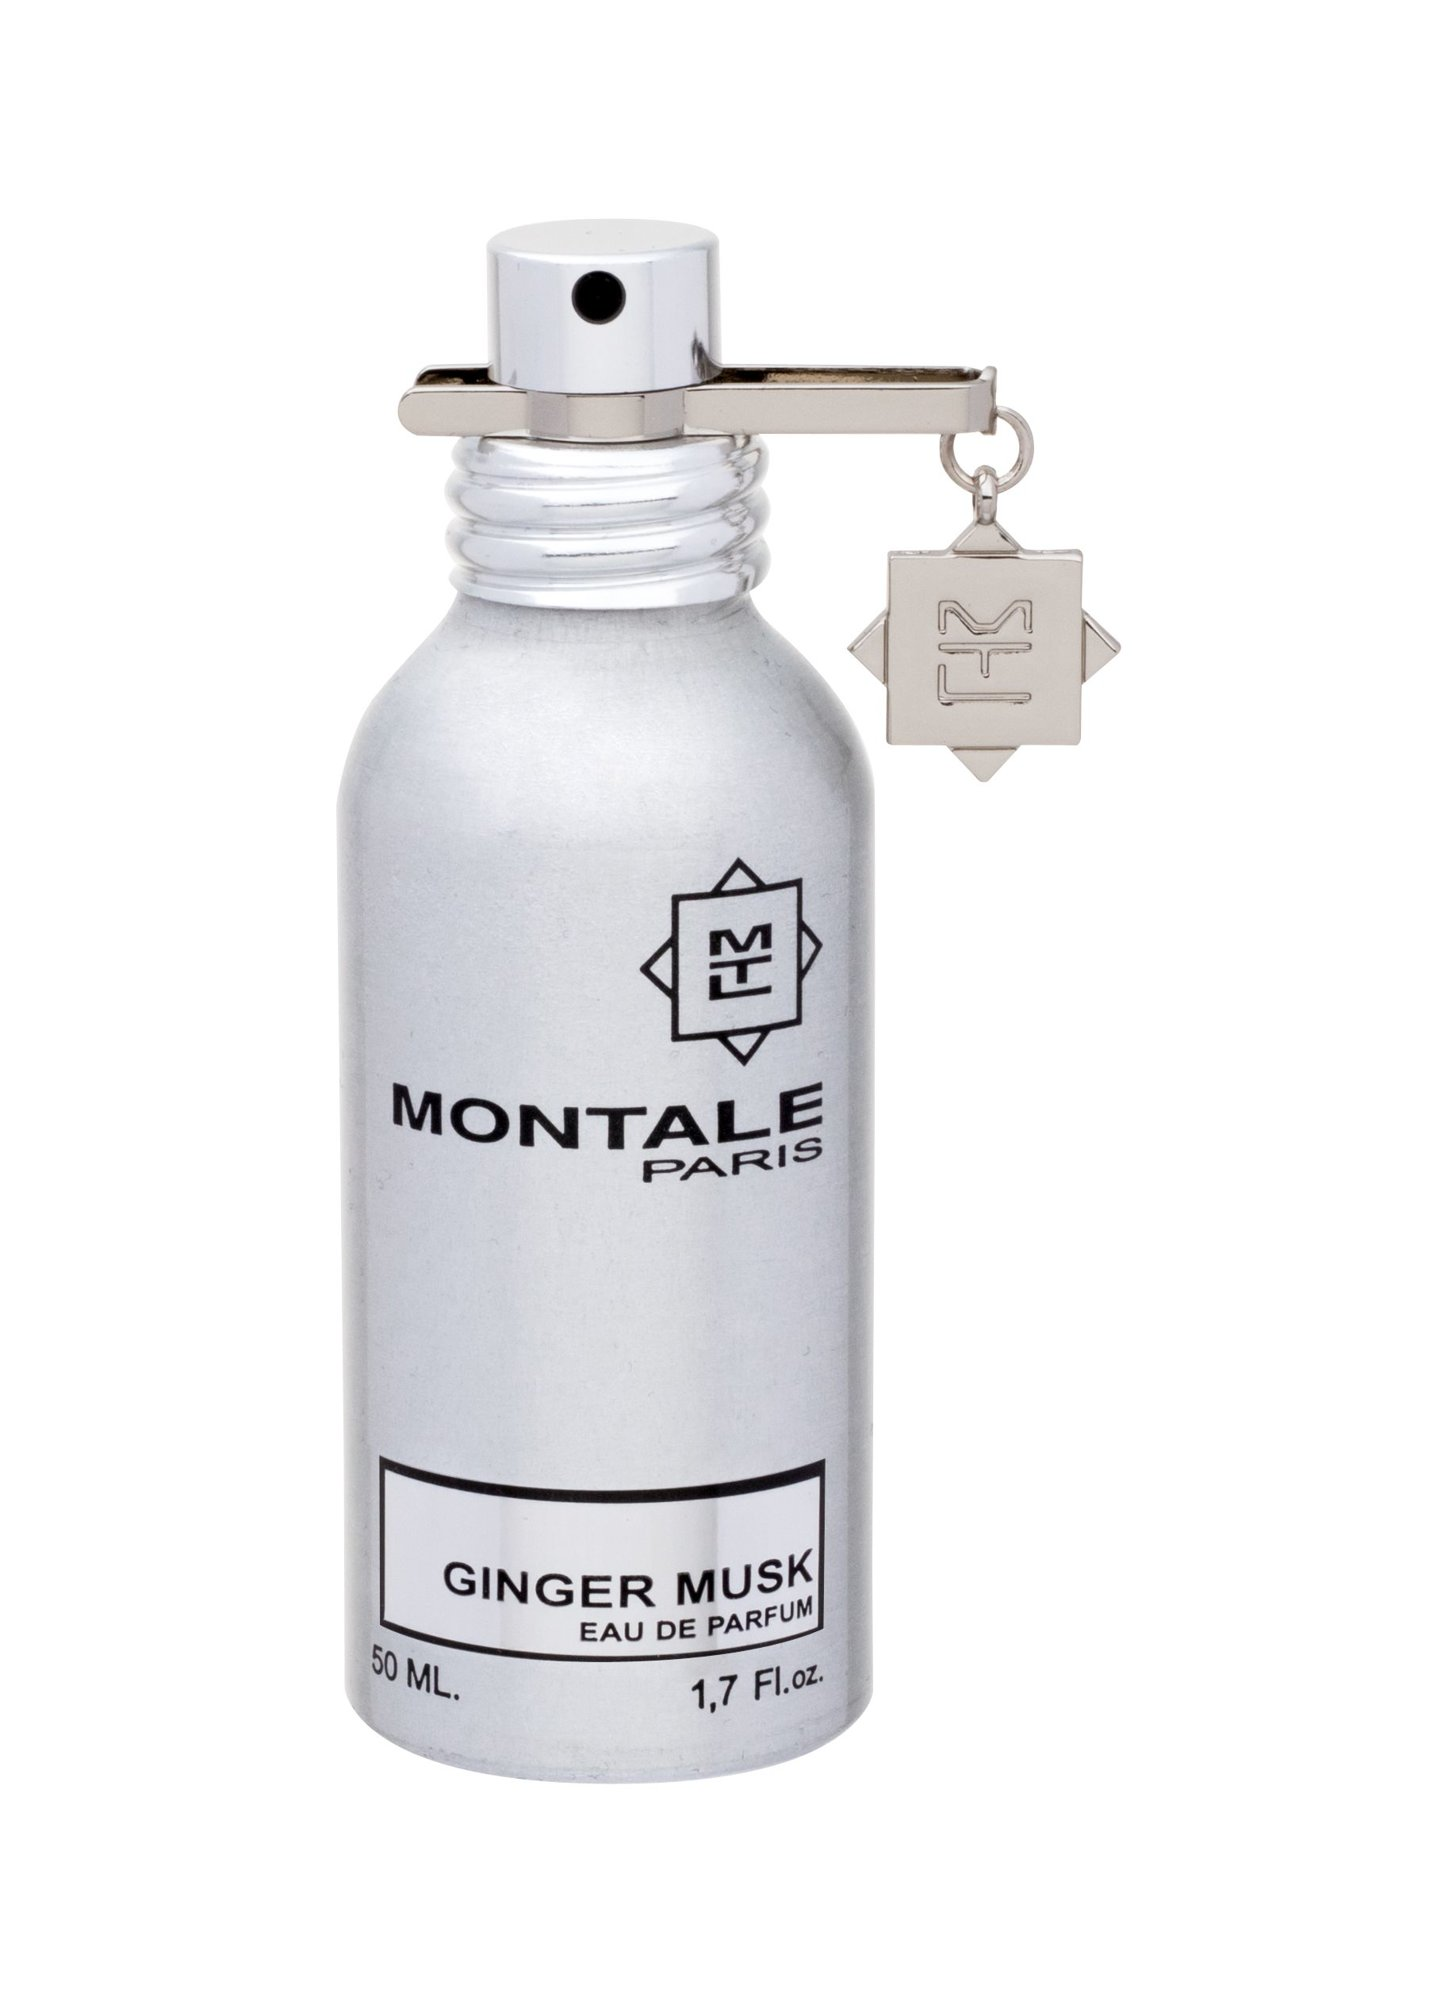 Montale Paris Ginger Musk EDP 50ml